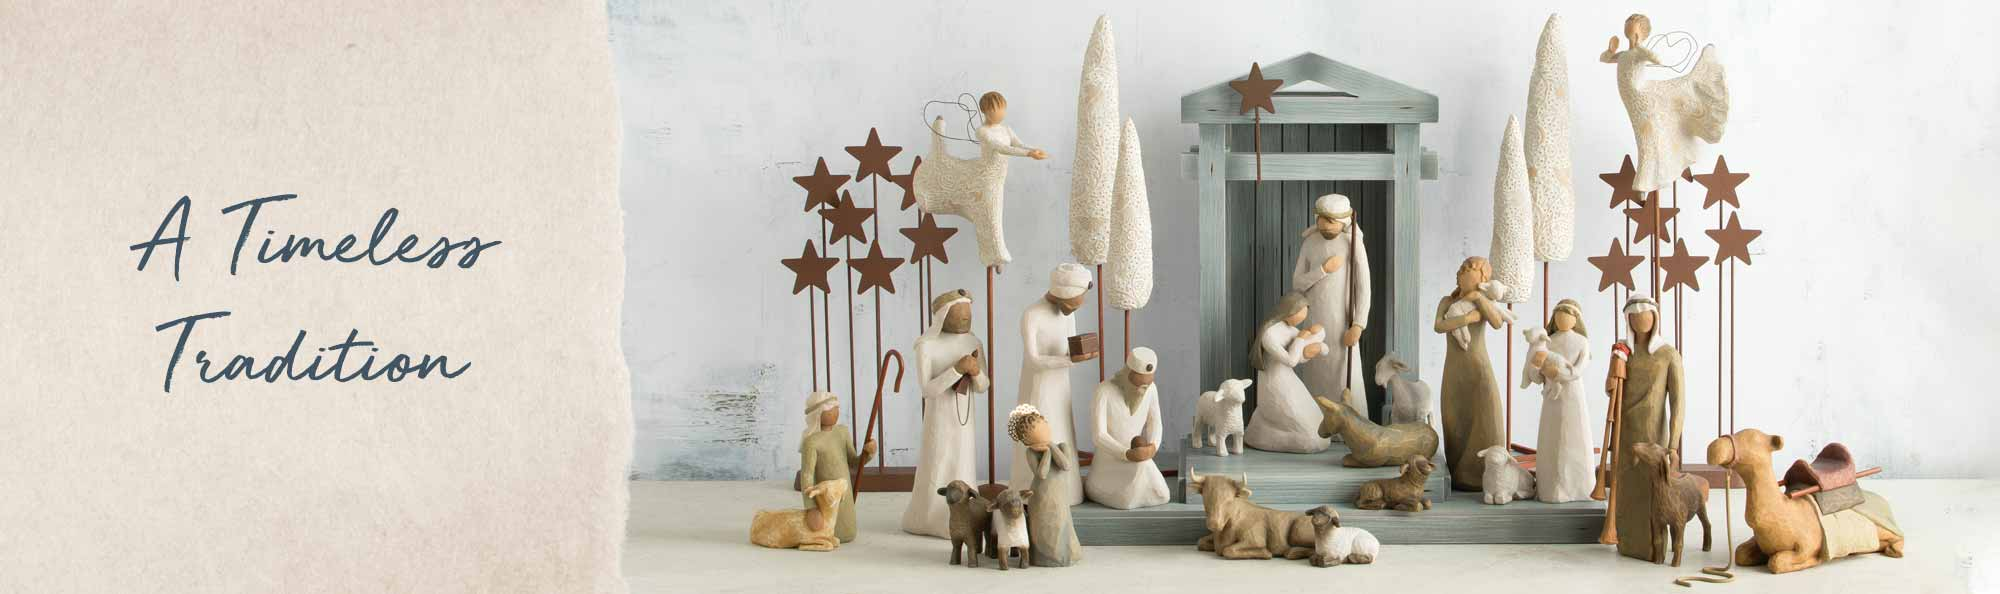 A timeless tradition. Hand carved nativity scene of Joseph, Mary and baby Jesus with wisemen, shepherds, angels, and animals.